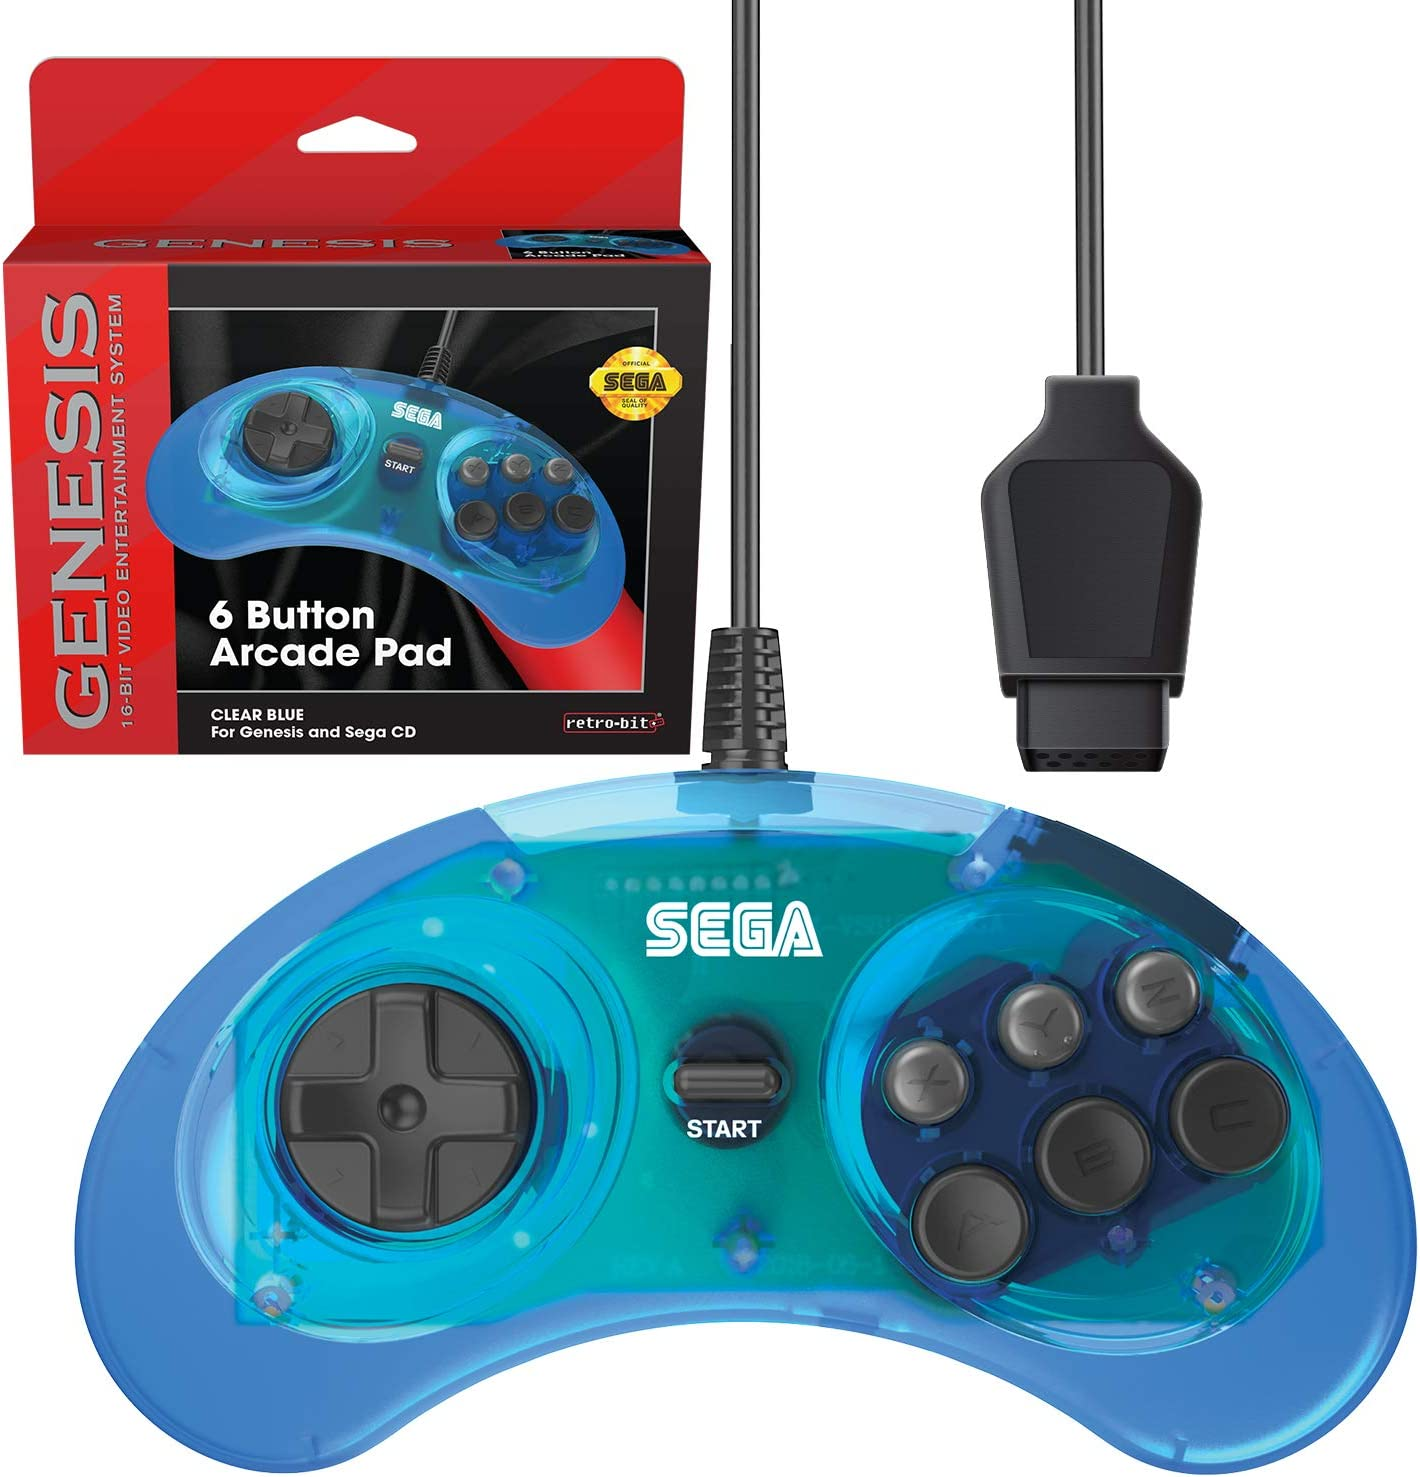 Retro Bit Official Sega Genesis Controller 6 Button Arcade Pad For Sega Genesis   Original Port    Clear Blue by By          Retro Bit